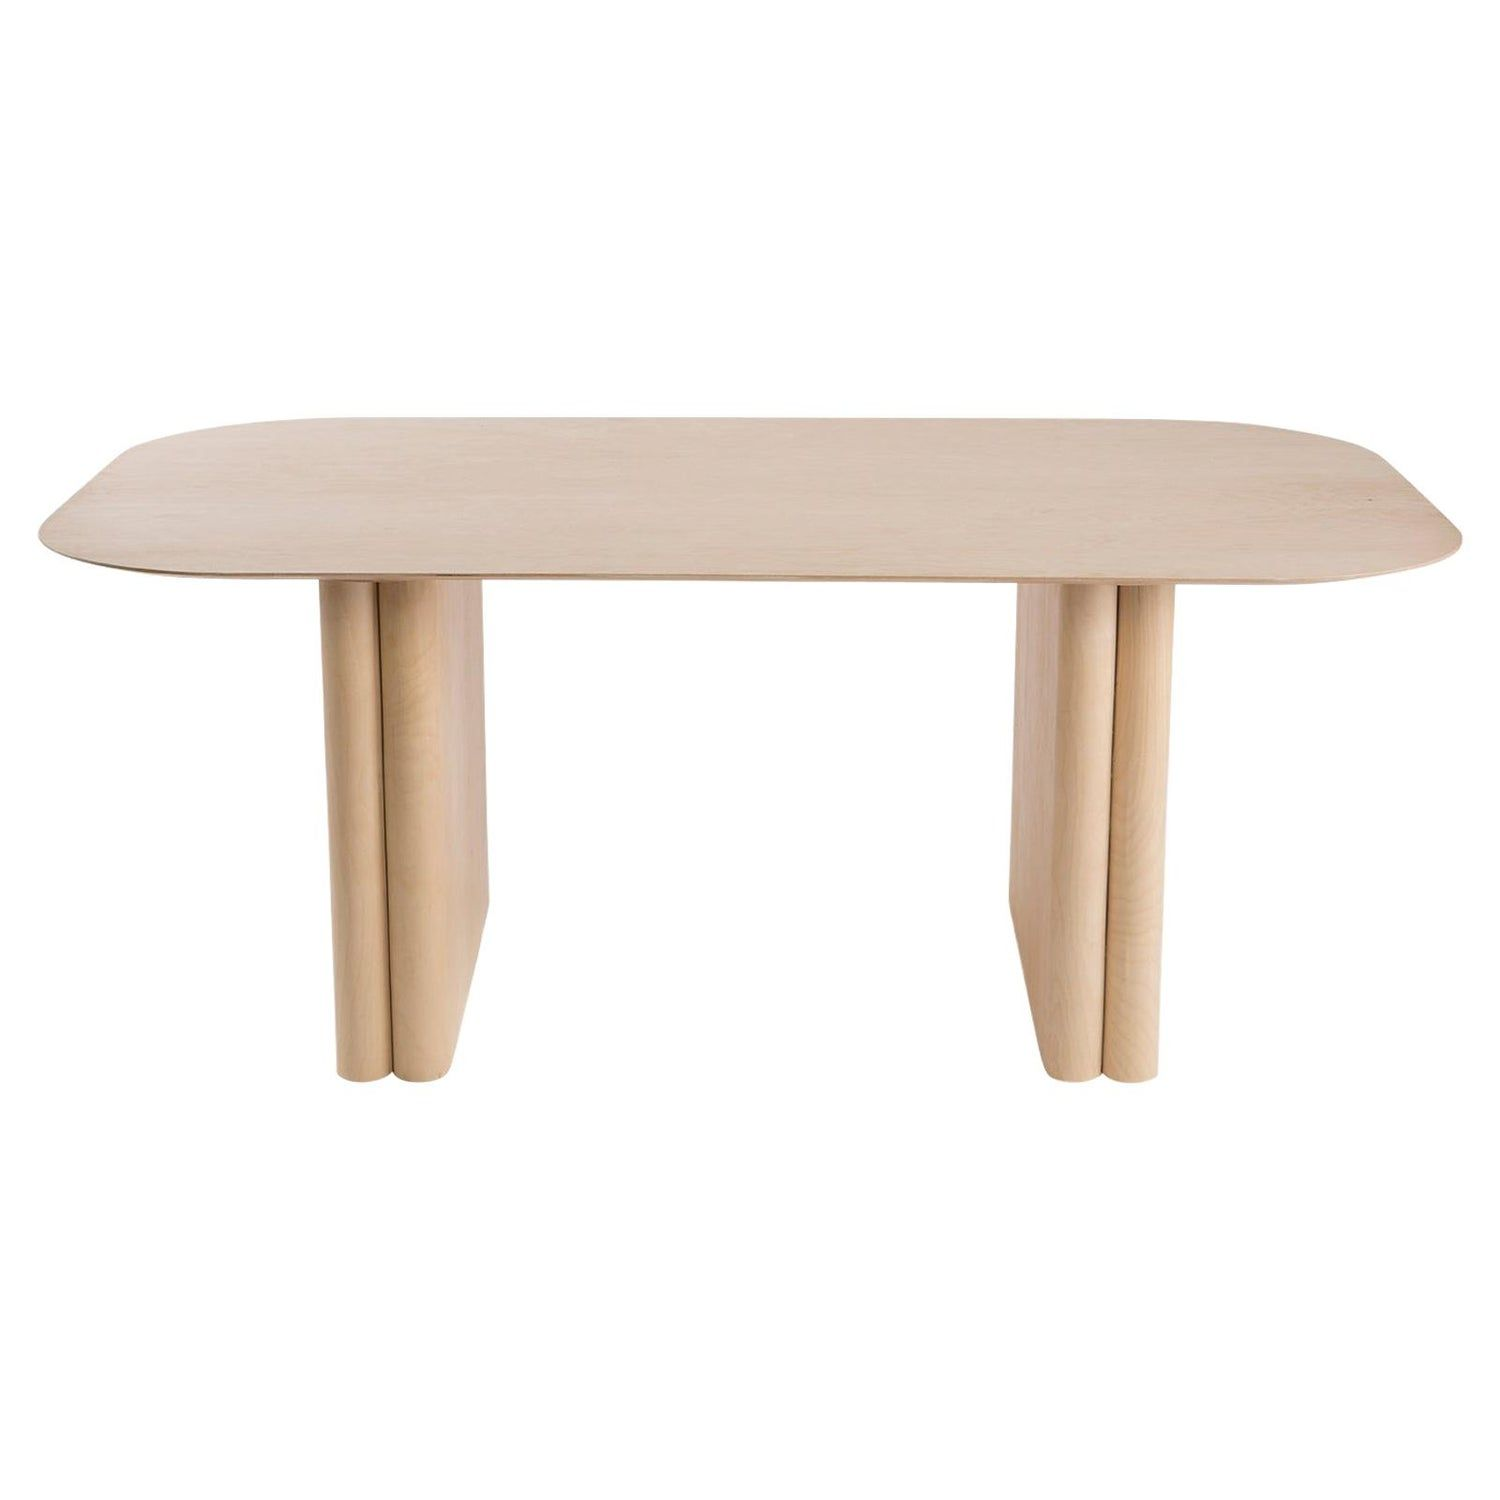 Rectangular Maple Dining Or Conference Column Table With Rounded Edges Round Pedestal Dining Maple Dining Table Dining Table